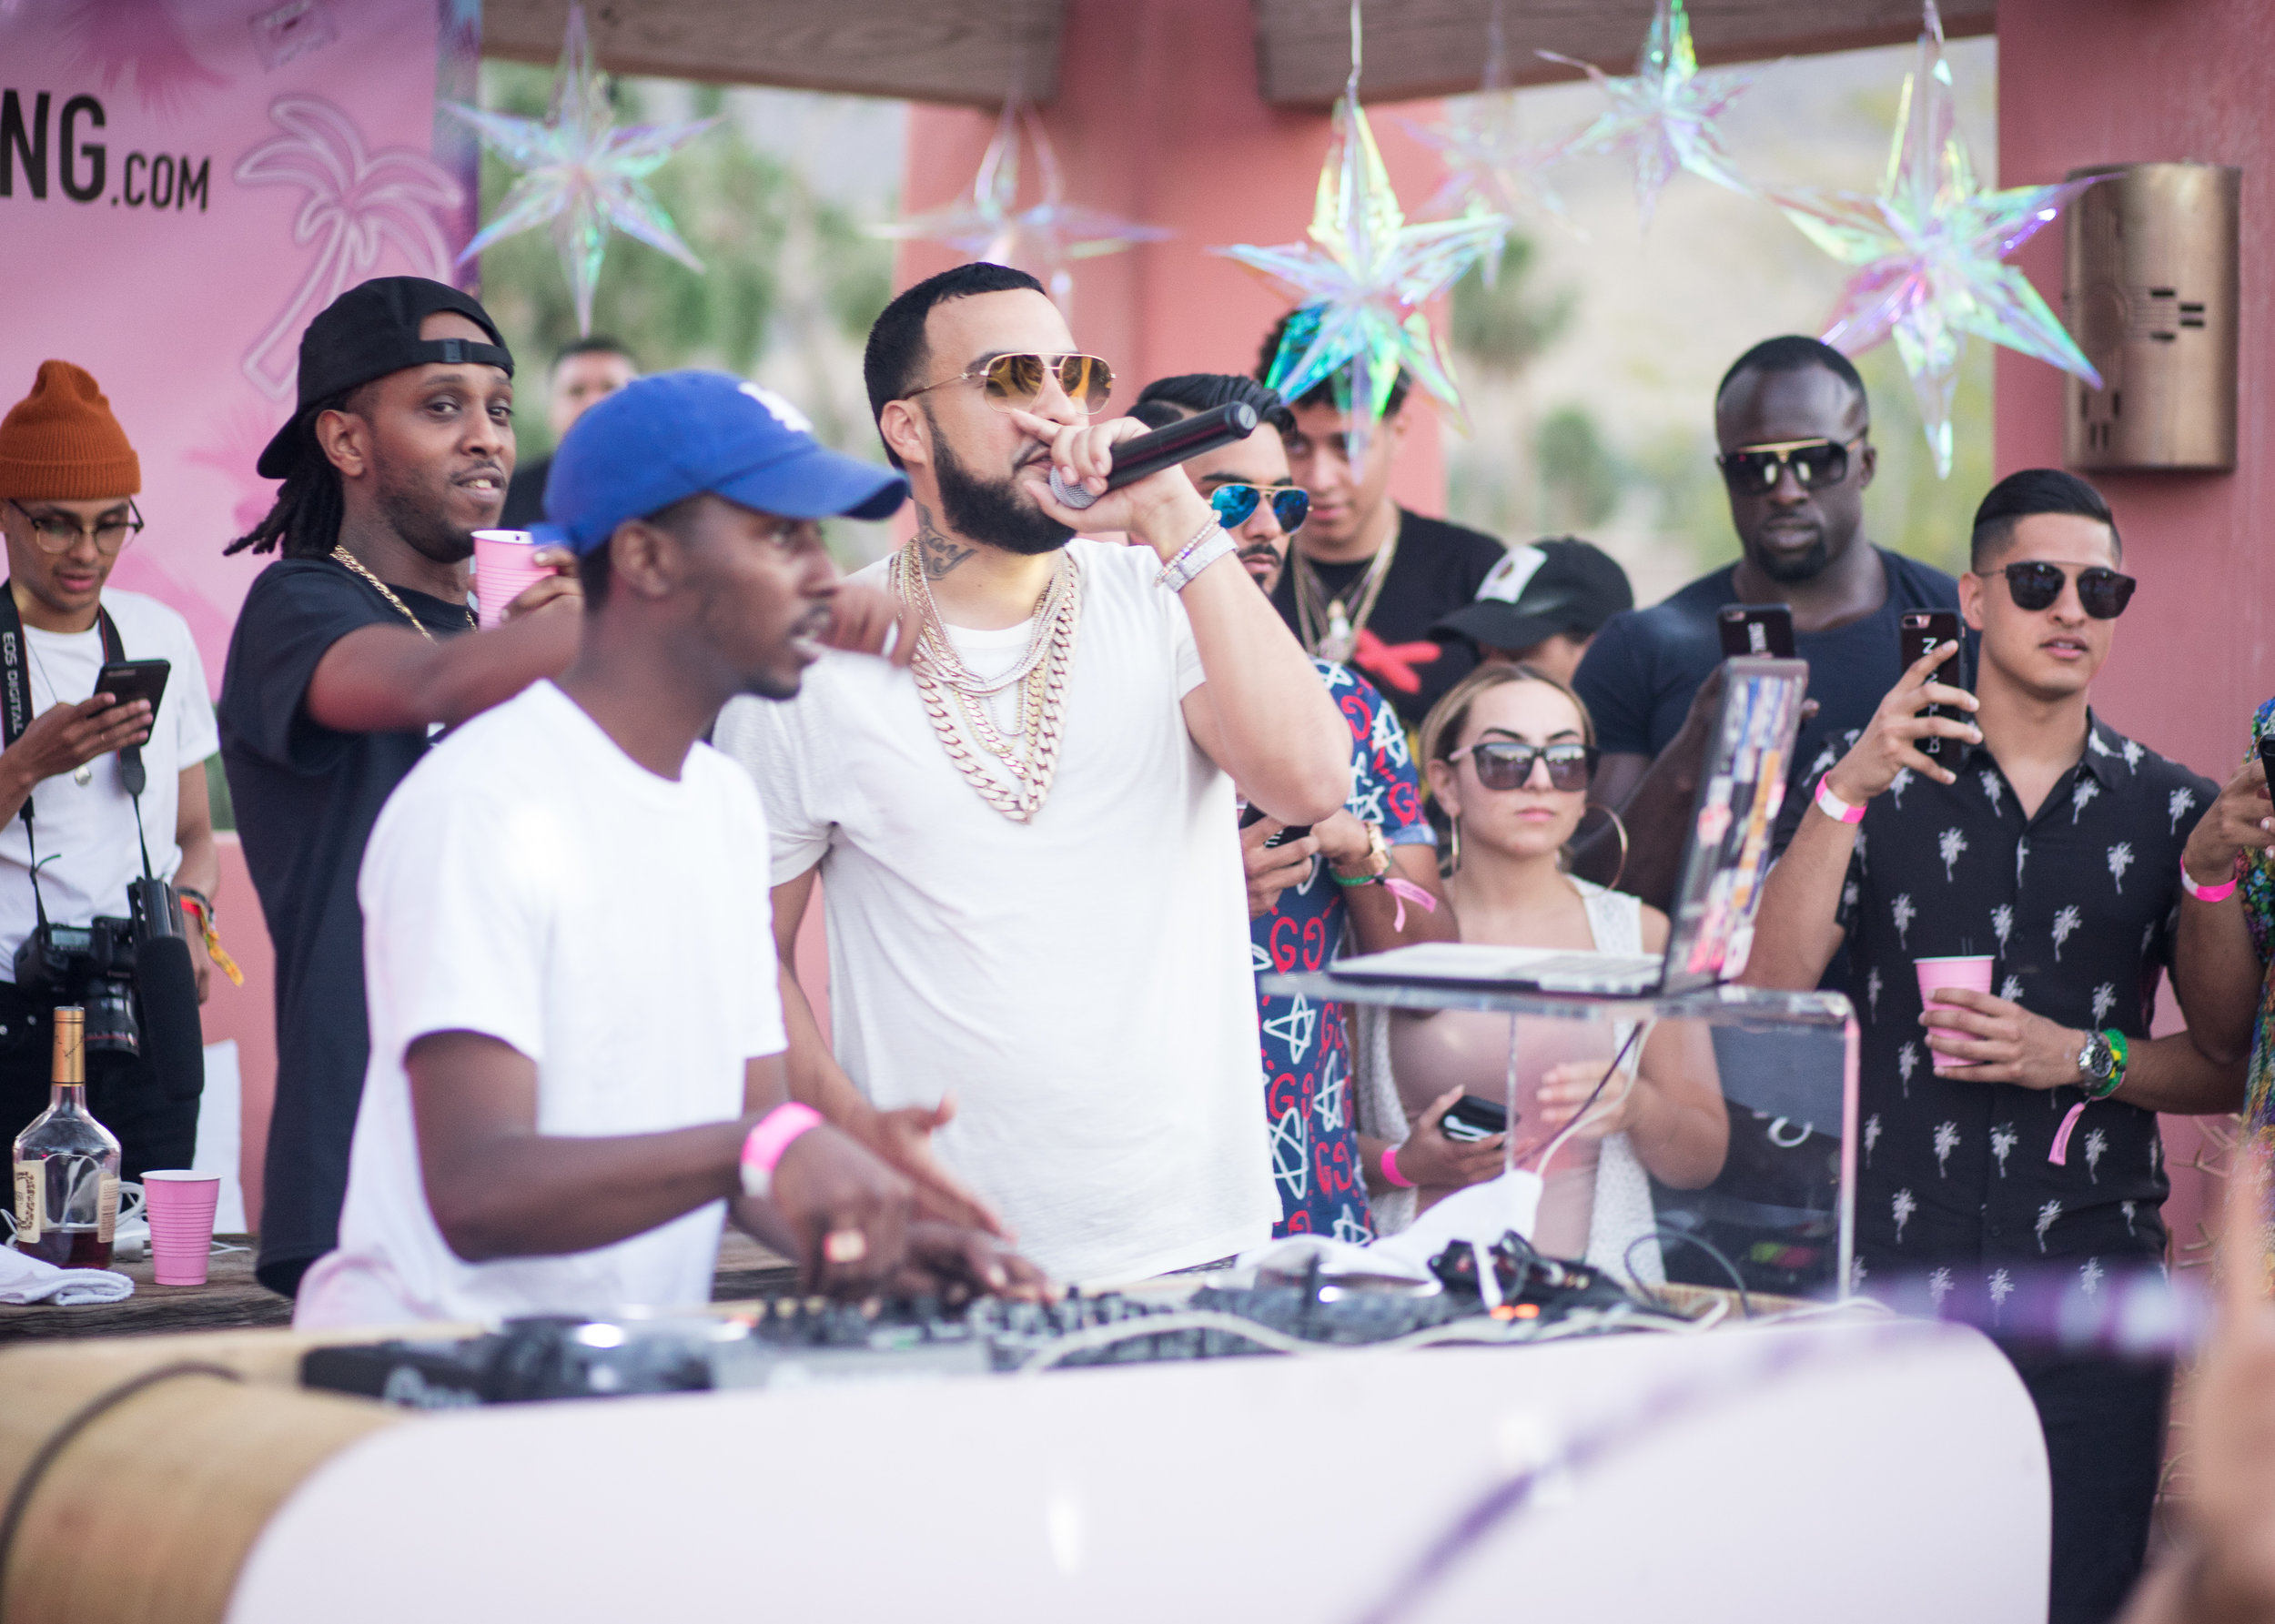 Ultimate Hollywood Coachella Poolside Party french montana dj casanoca no vacancy inn.jpg